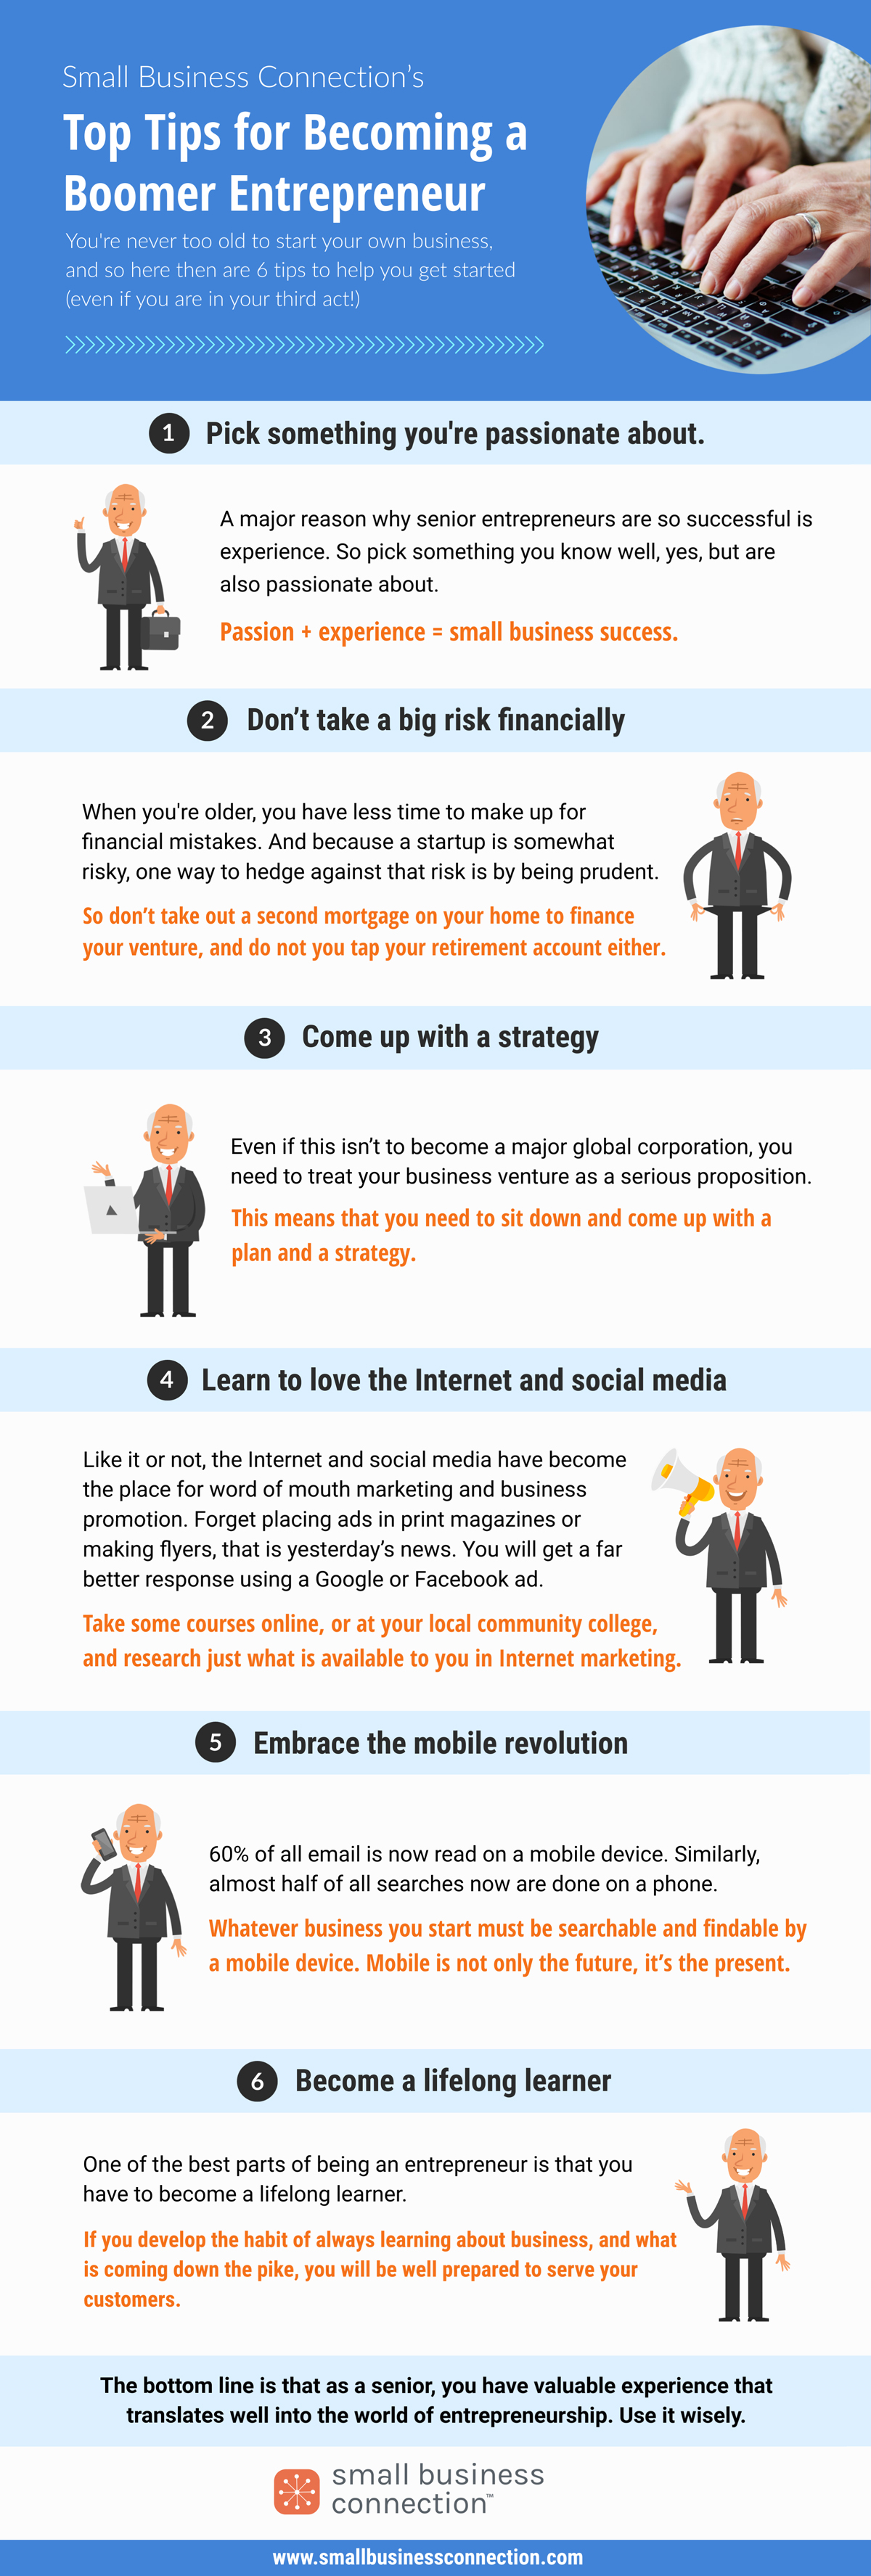 SBC Infographic: Top Tips for Becoming a Boomer Entpreneur